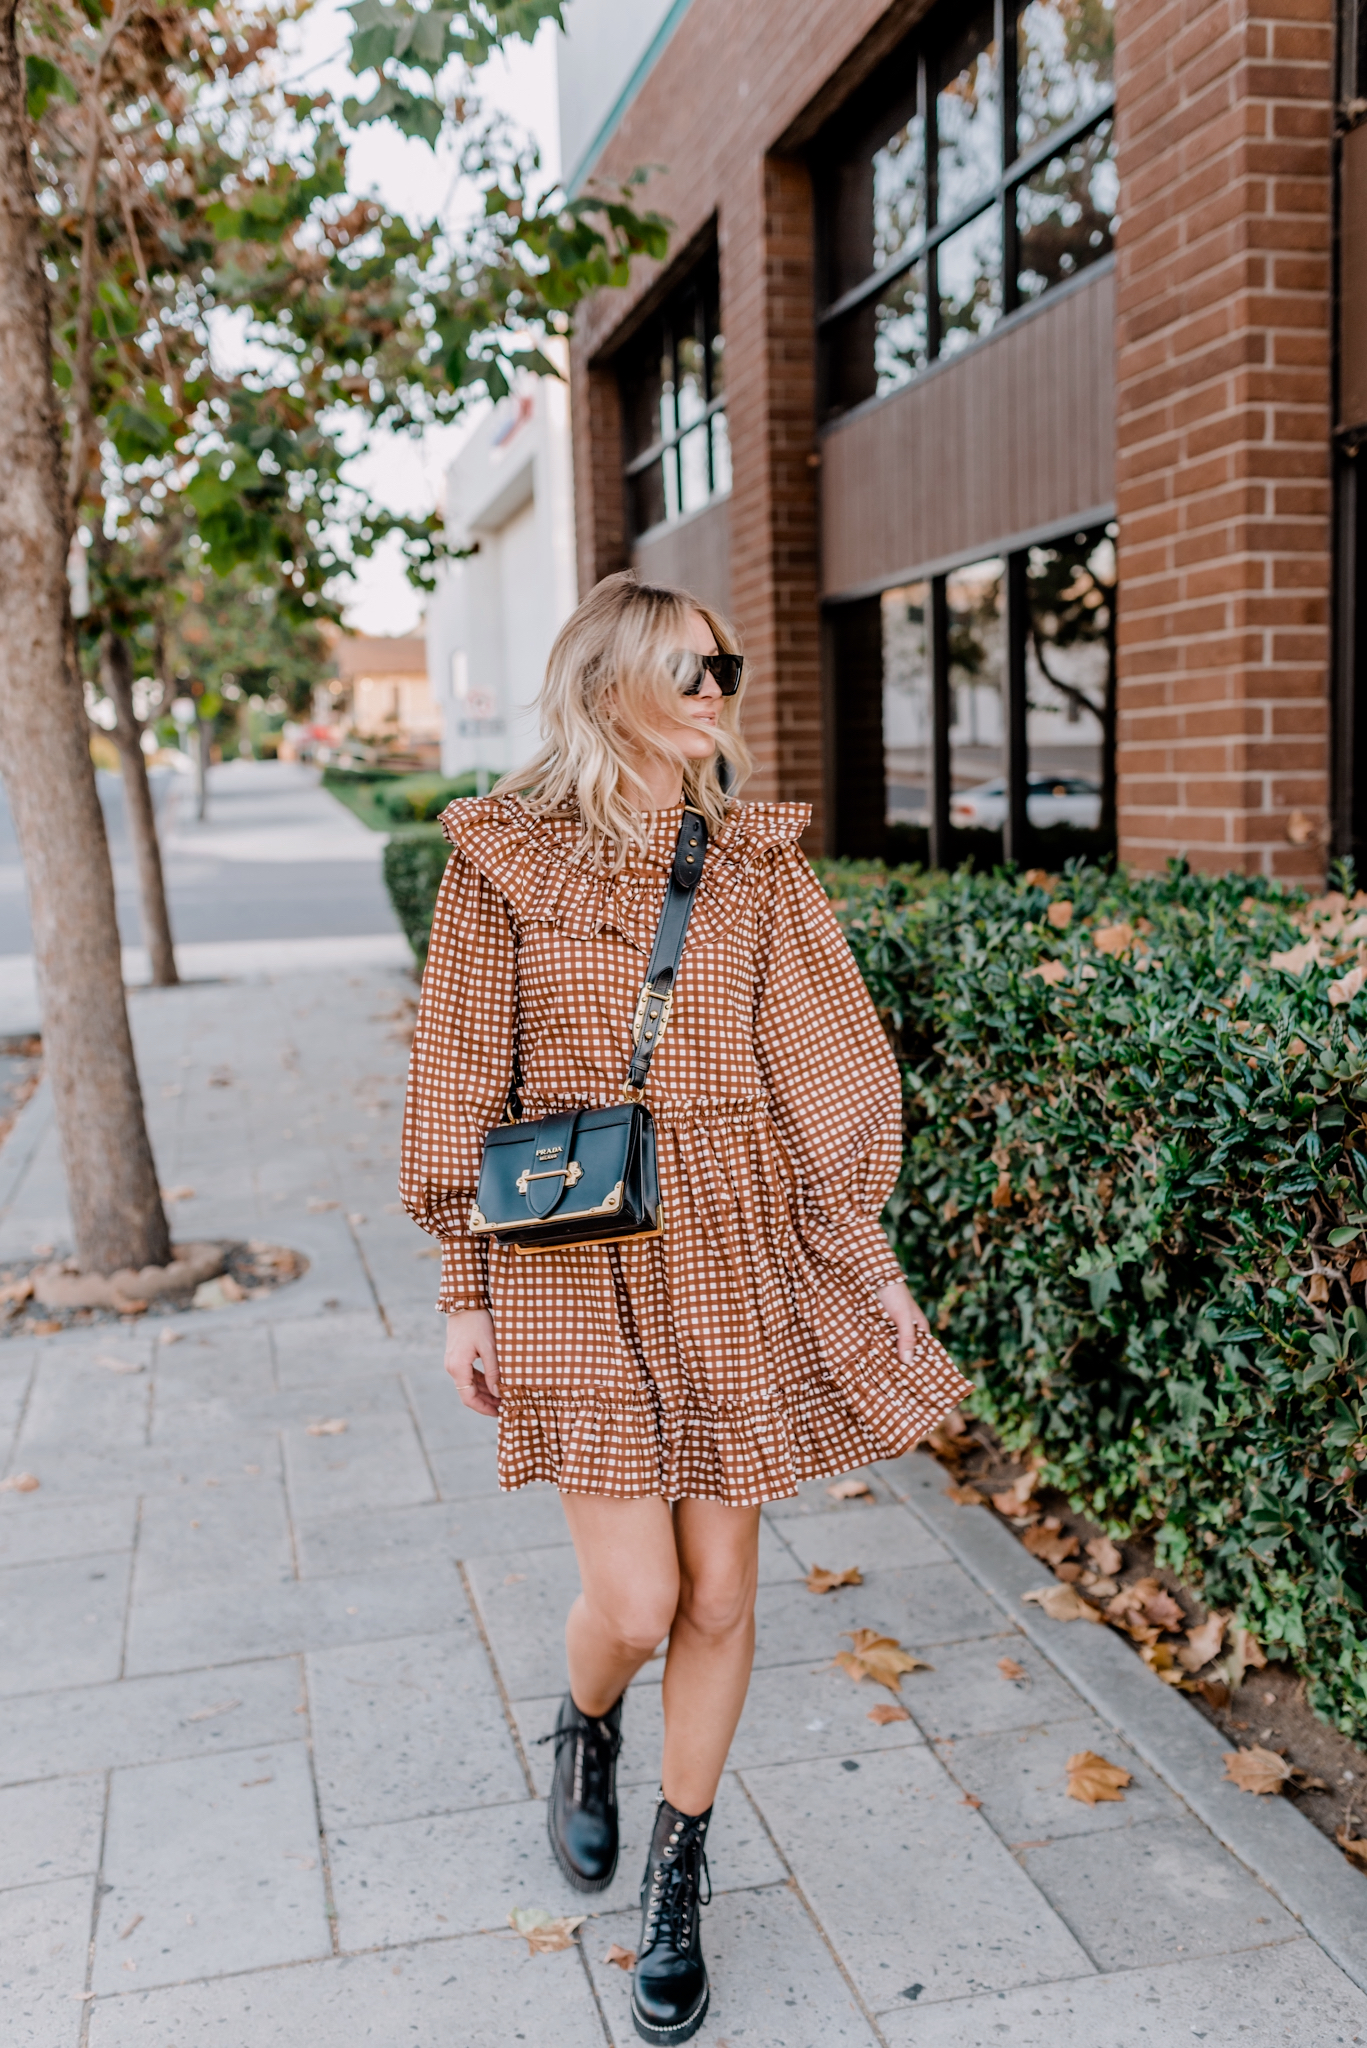 Top Looks of 2020 |Top Looks by San Diego fashion blog, Navy Grace: image of a woman wearing a brown brown gingham dress, black combat boots, and black Prada bag.